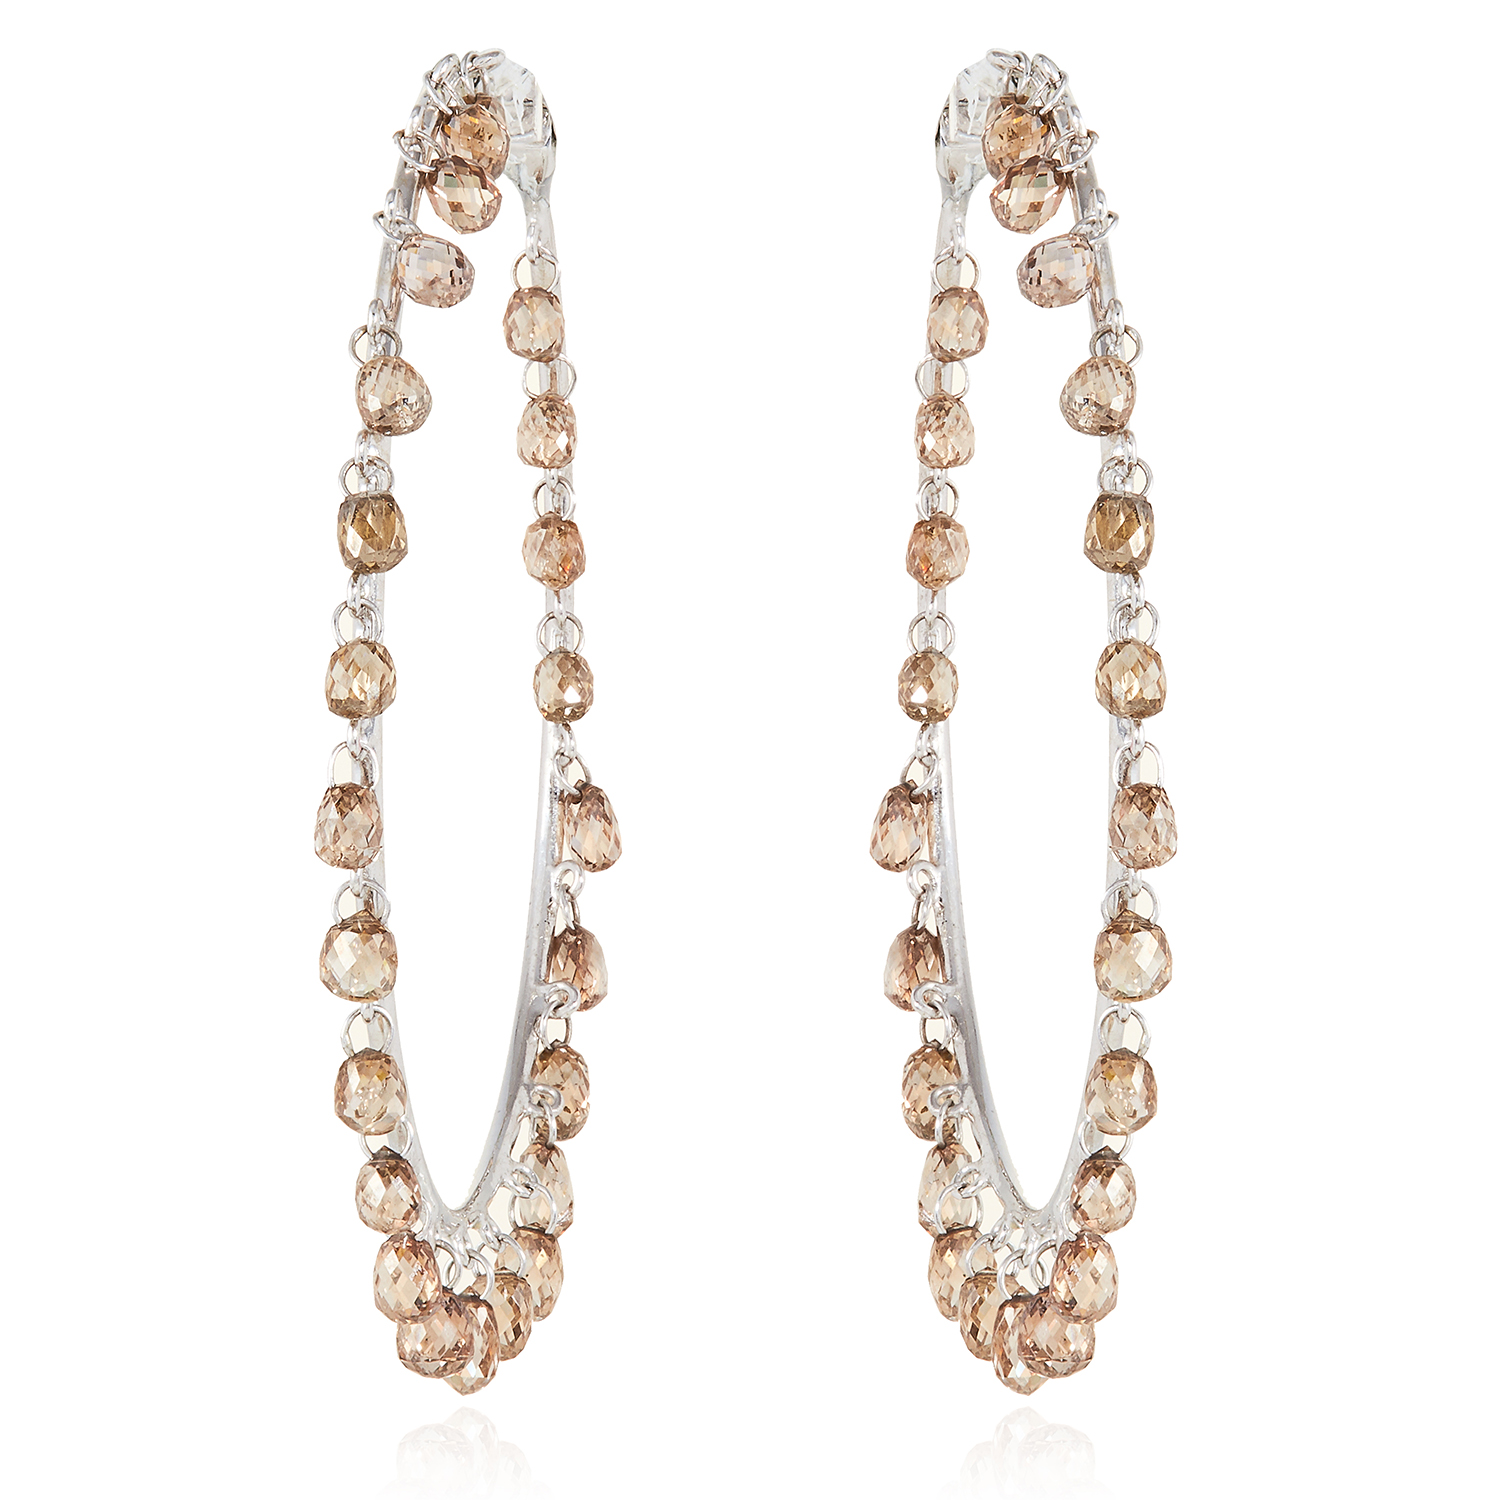 A PAIR OF 7.20 CARAT FANCY BROWN DIAMOND HOOP EARRINGS in 18ct white gold, each designed as a